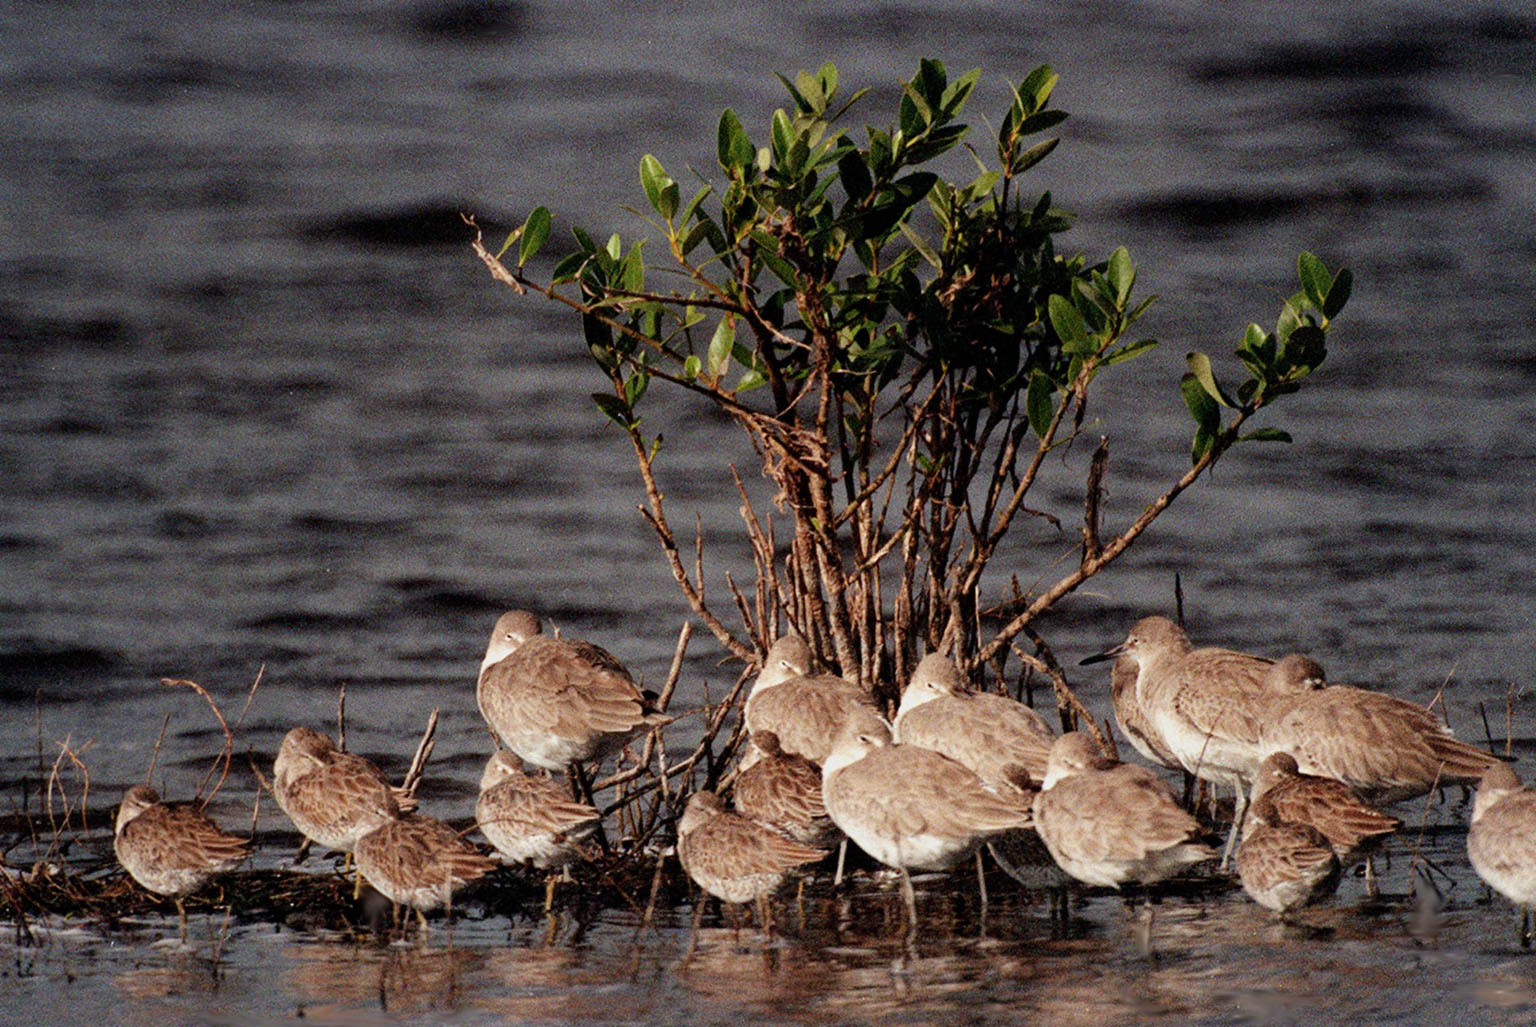 KENNEDY SPACE CENTER, FLA. -- Willets gather around a plant in the shallow waters of the Merritt Island National Wildlife Refuge, which shares a boundary with Kennedy Space Center. Willets are best identified in flight by their black-and-white wing pattern; on the ground by their thick black bills and gray legs. They breed in southern Canada, the United States and the West Indies, wintering from the southern U.S. to central South America. The 92,000-acre refuge is a habitat for more than 330 species of birds, 31 mammals, 117 fishes and 65 amphibians and reptiles. The marshes and open water of the refuge provide wintering areas for 23 species of migratory waterfowl, as well as a year-round home for great blue herons, great egrets, wood storks, cormorants, brown pelicans and other species of marsh and shore birds